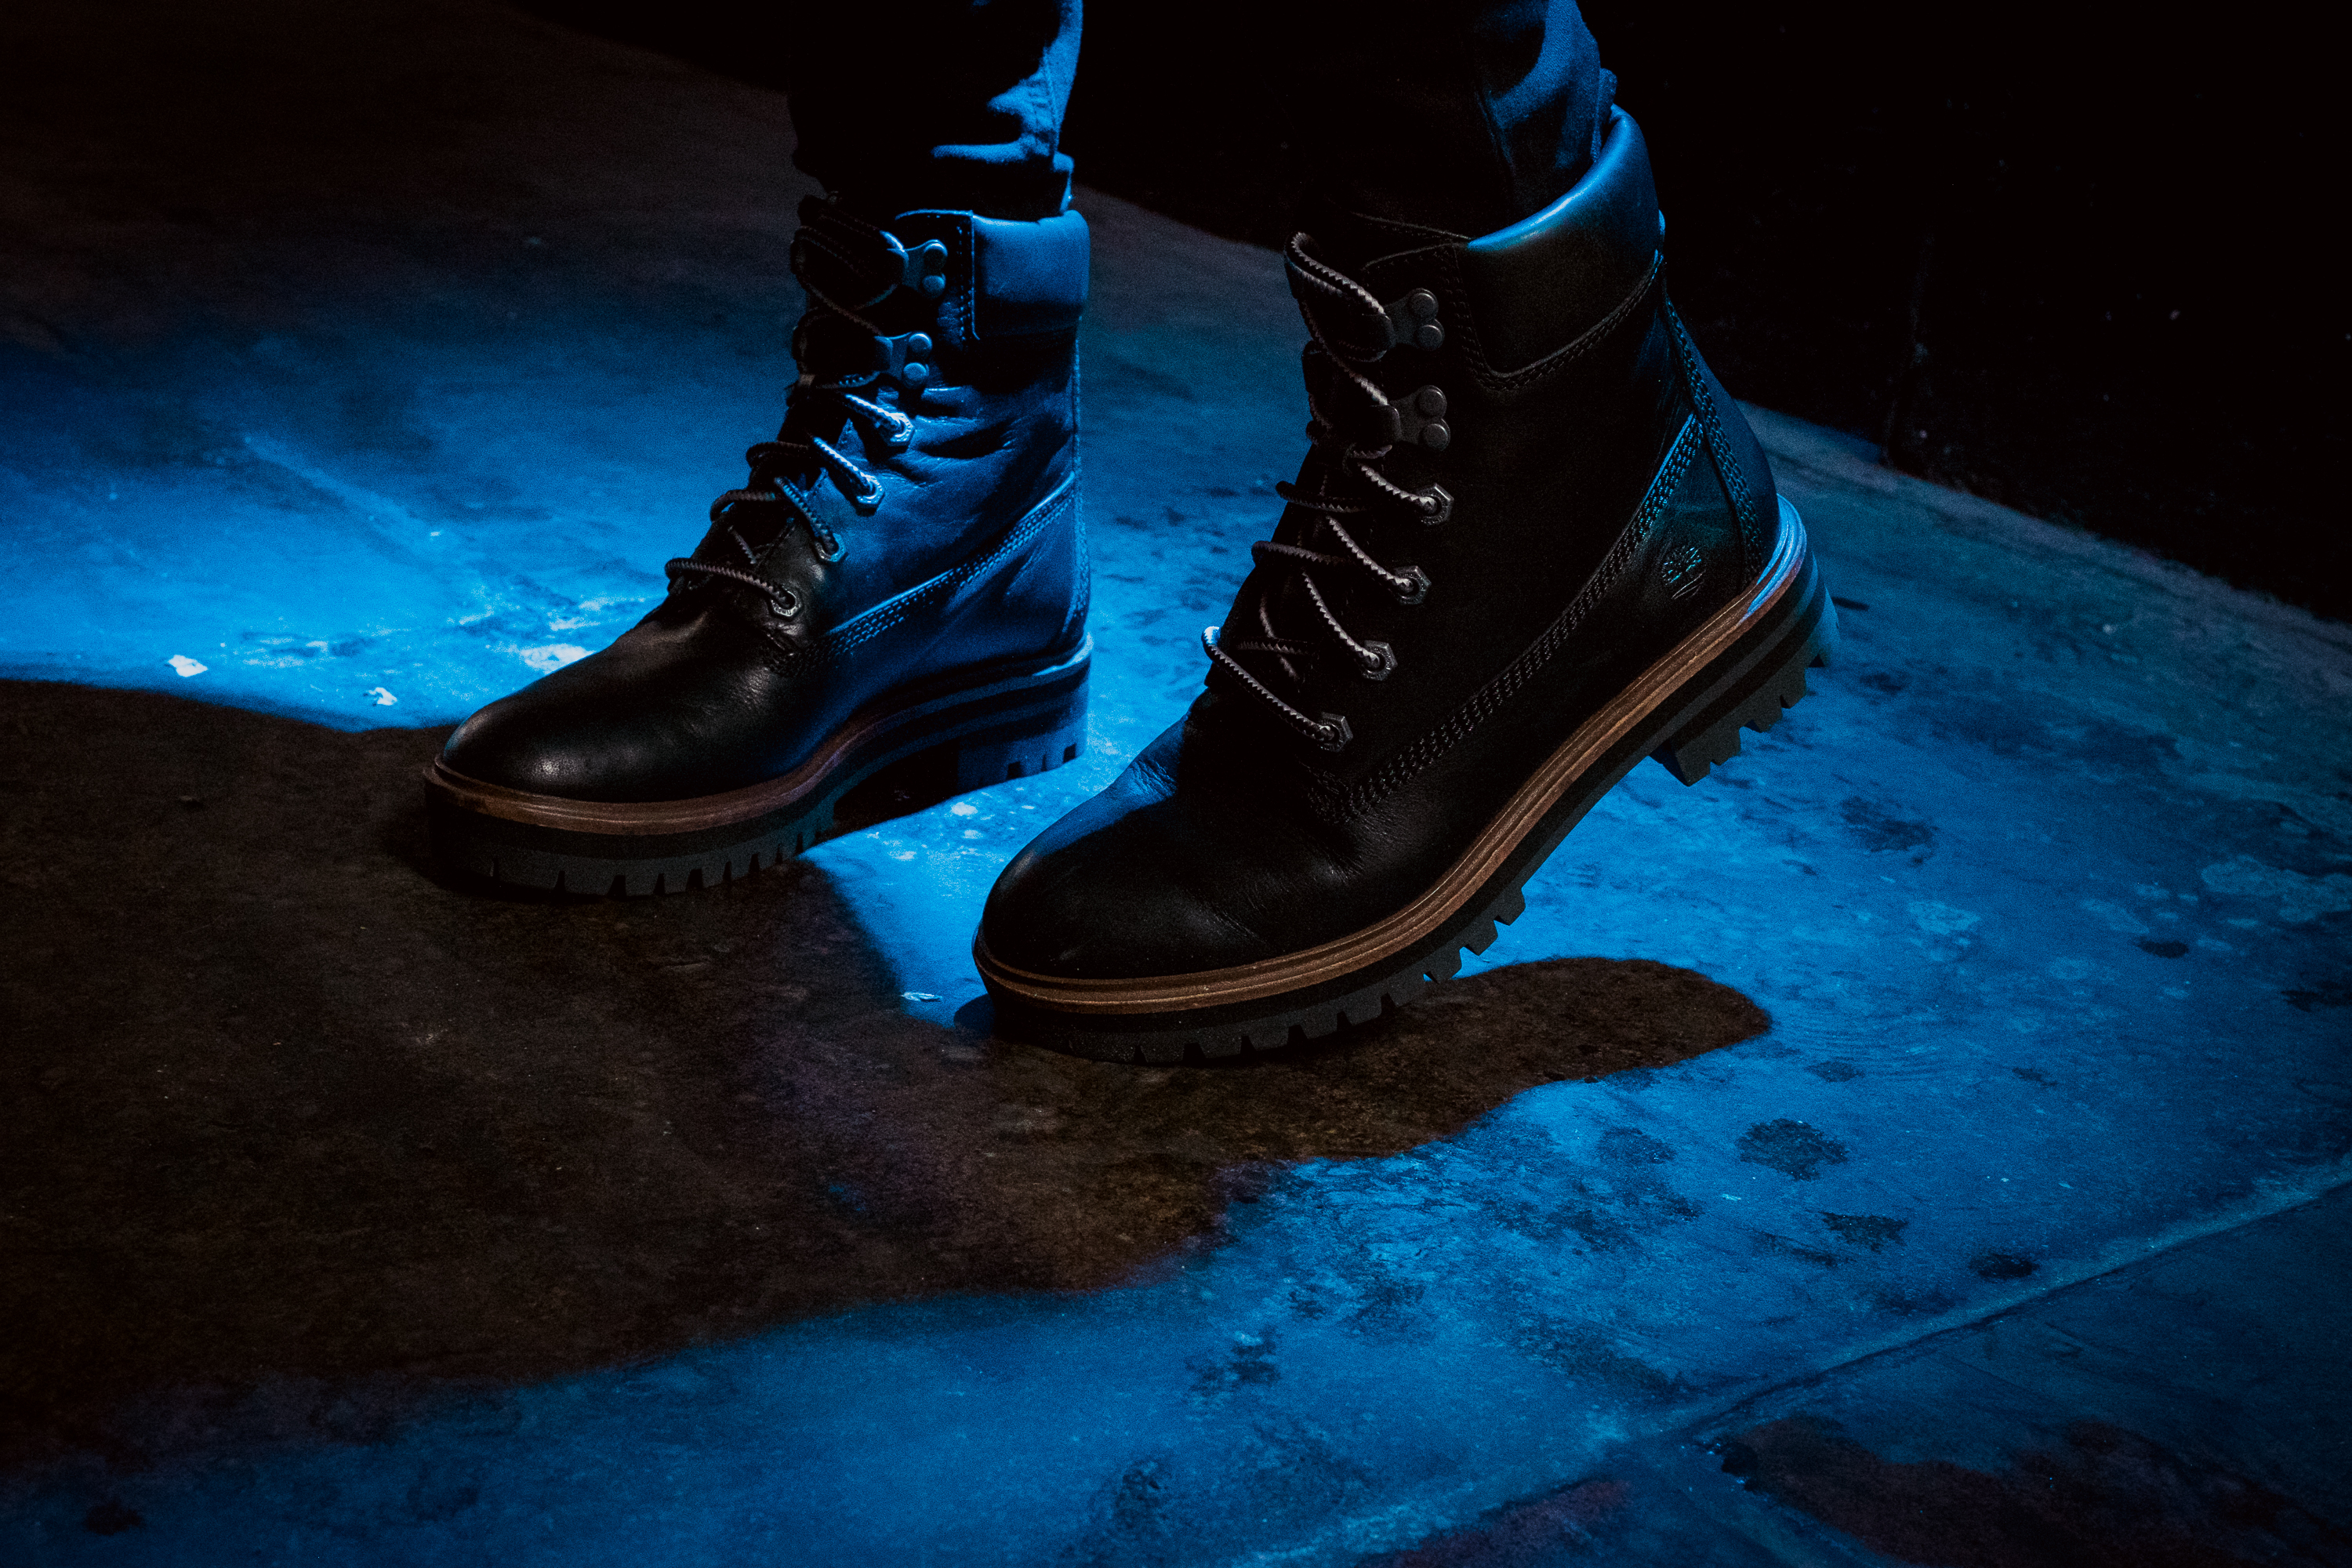 Person Wearing Black Work Boots Standing On Concrete Surface